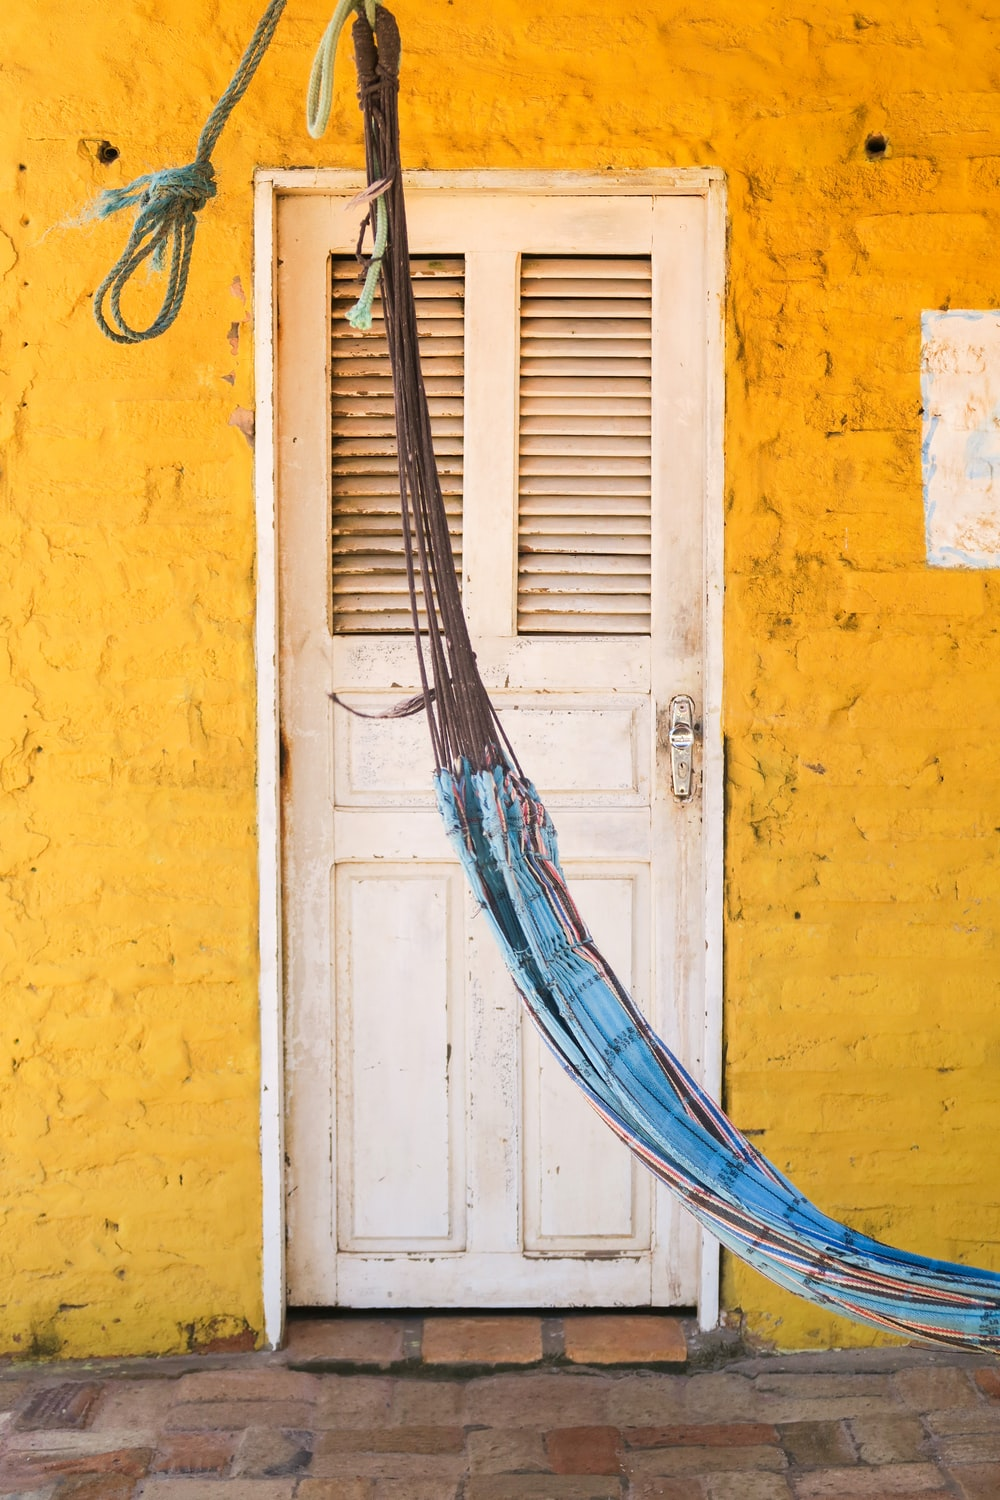 brown wooden ladder leaning on yellow painted wall